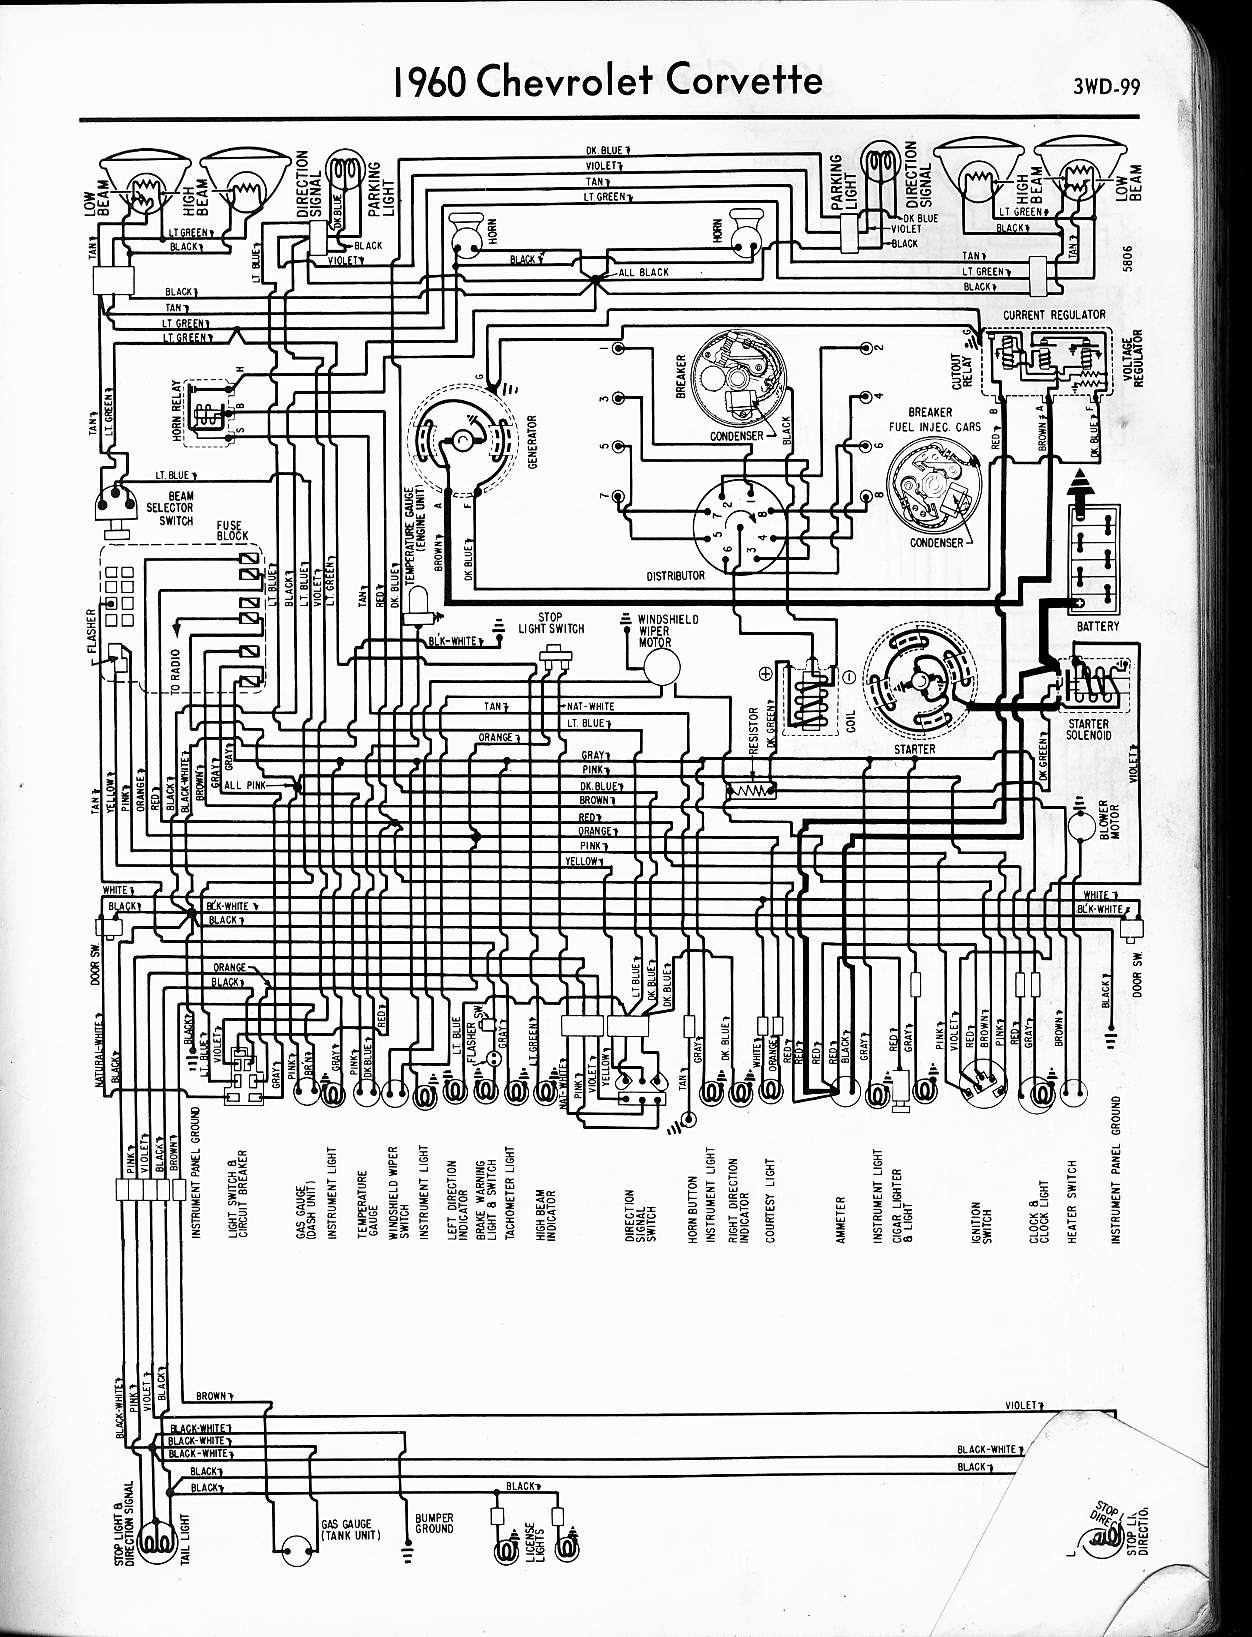 1960 Chevy Pickup Wiring Free Diagram For You 1965 F100 Harness Get Image About Chevrolet C10 Blogs Rh 16 20 4 Restaurant Freinsheimer Hof De Truck